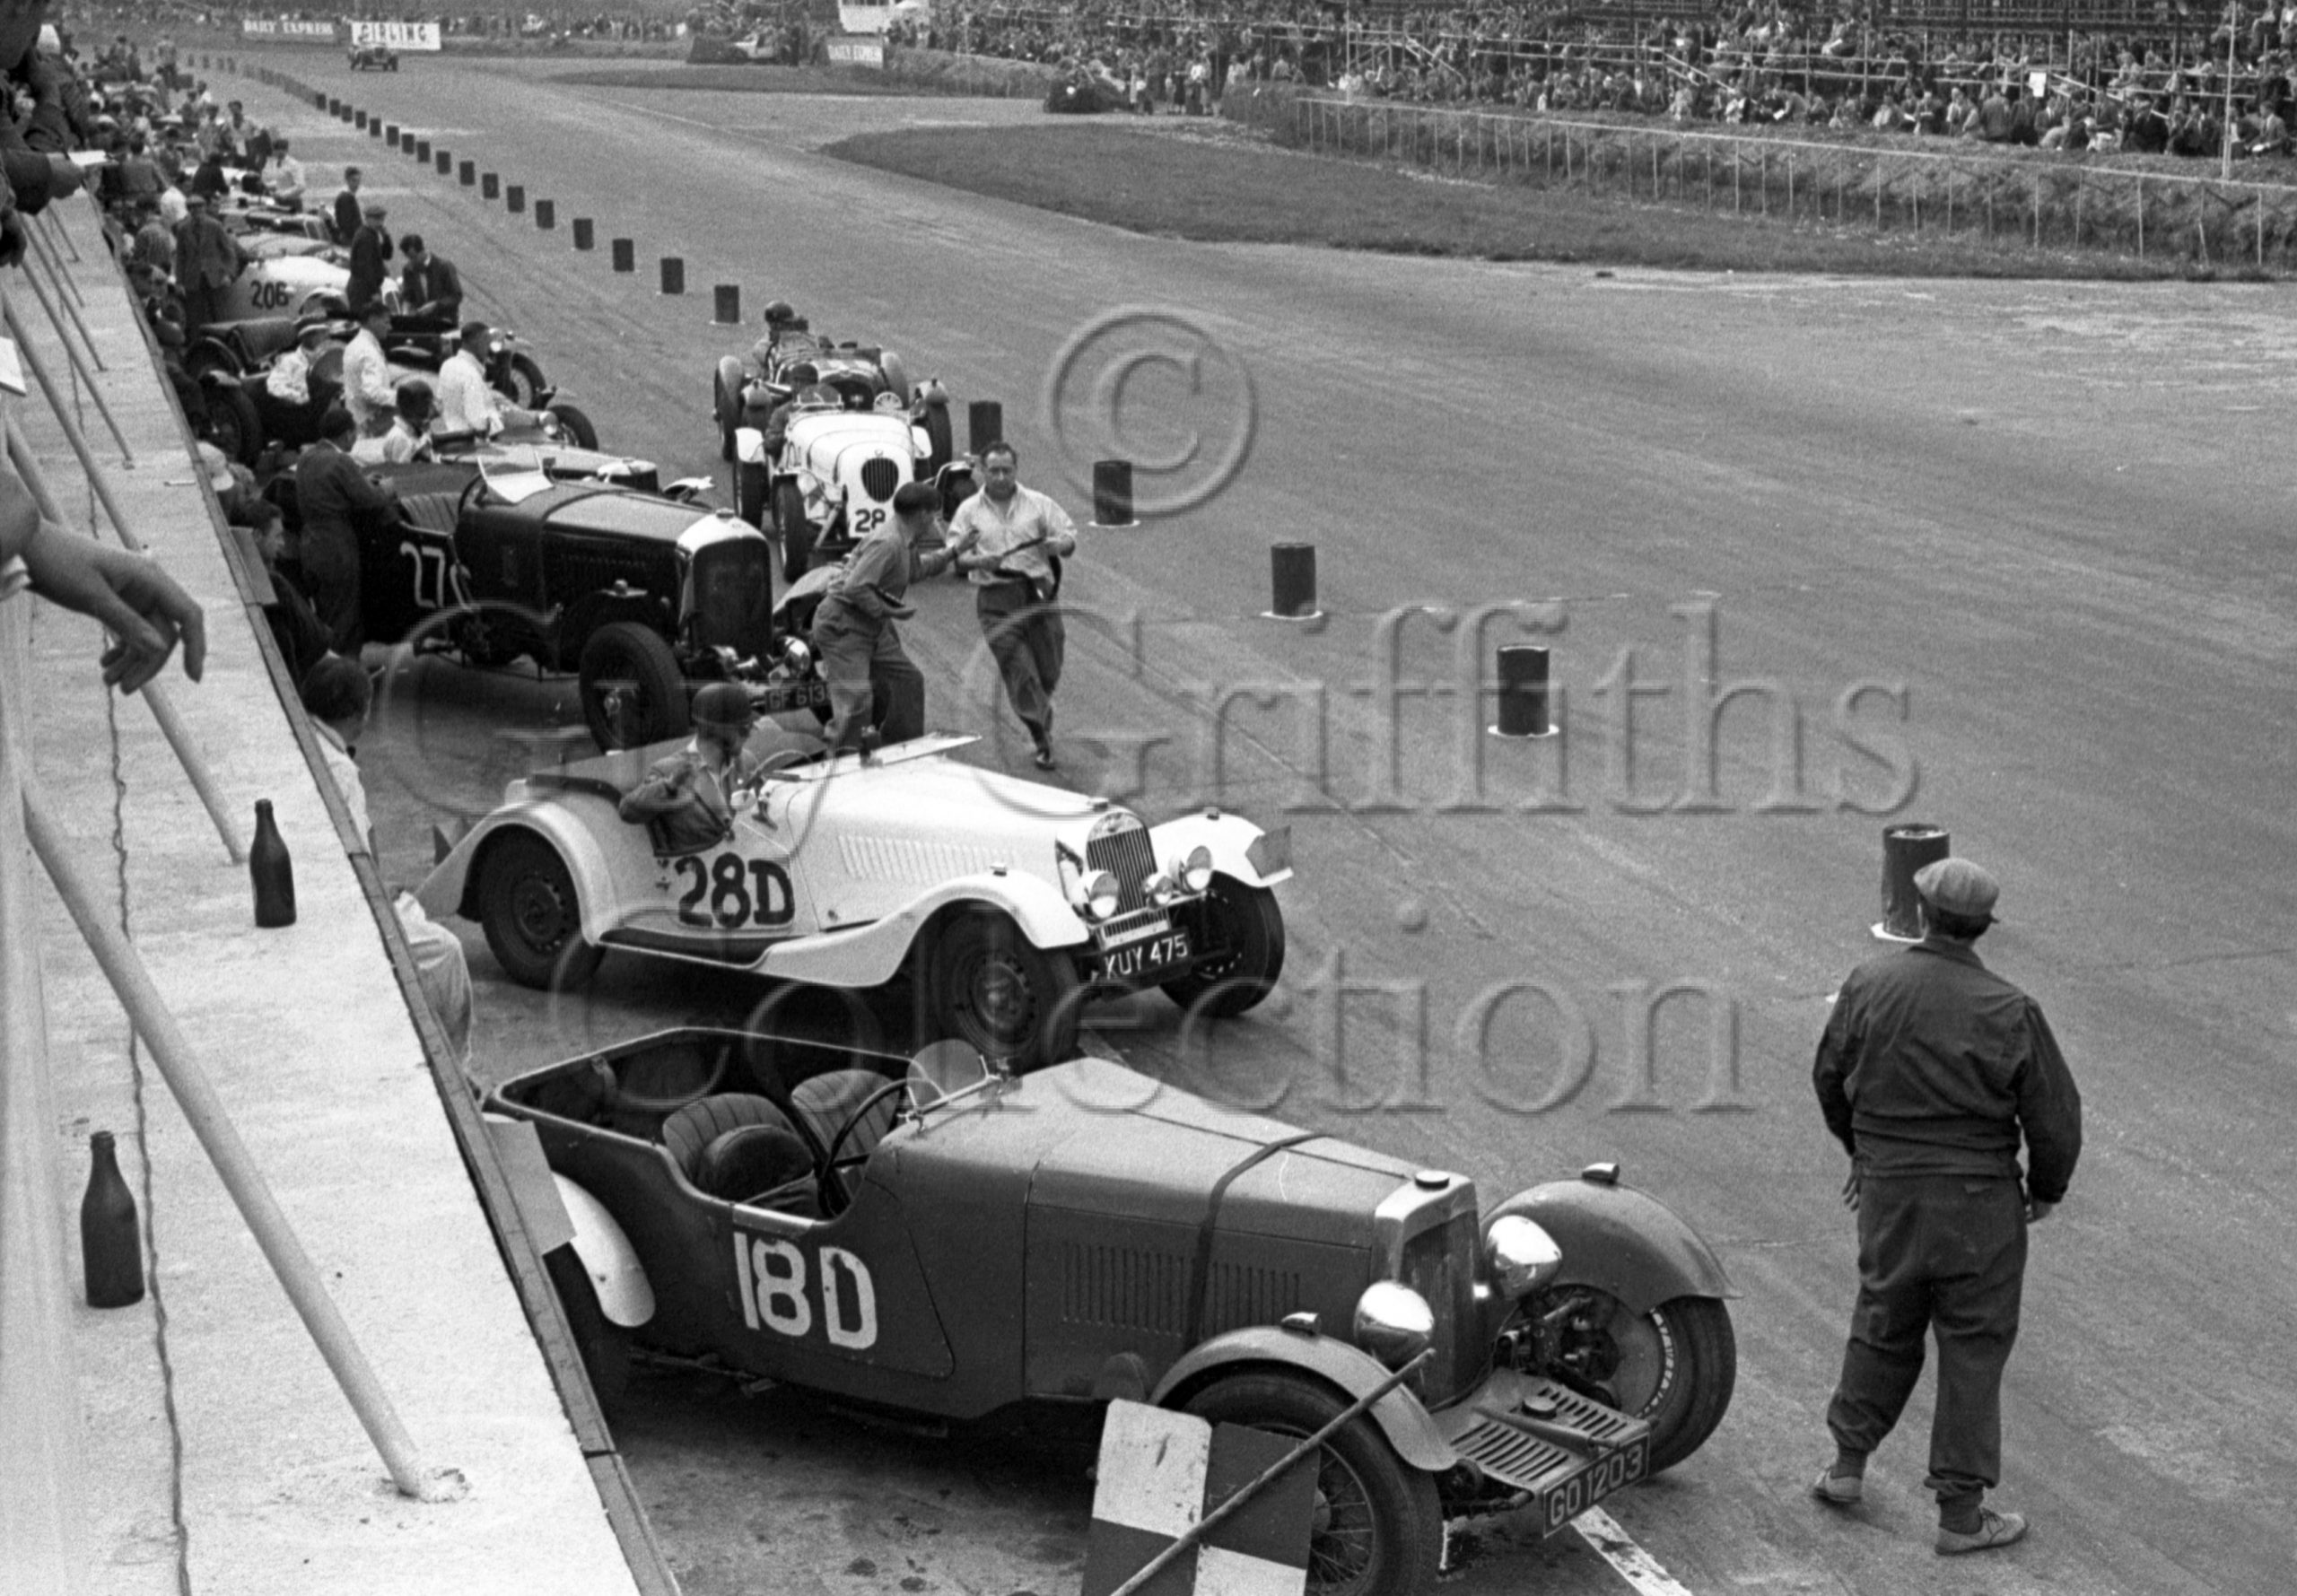 60-244–P-B-Reece–Morgan-Plus-4-KUY-475–Silverstone–30-08-1952.jpg - Guy Griffiths Collection